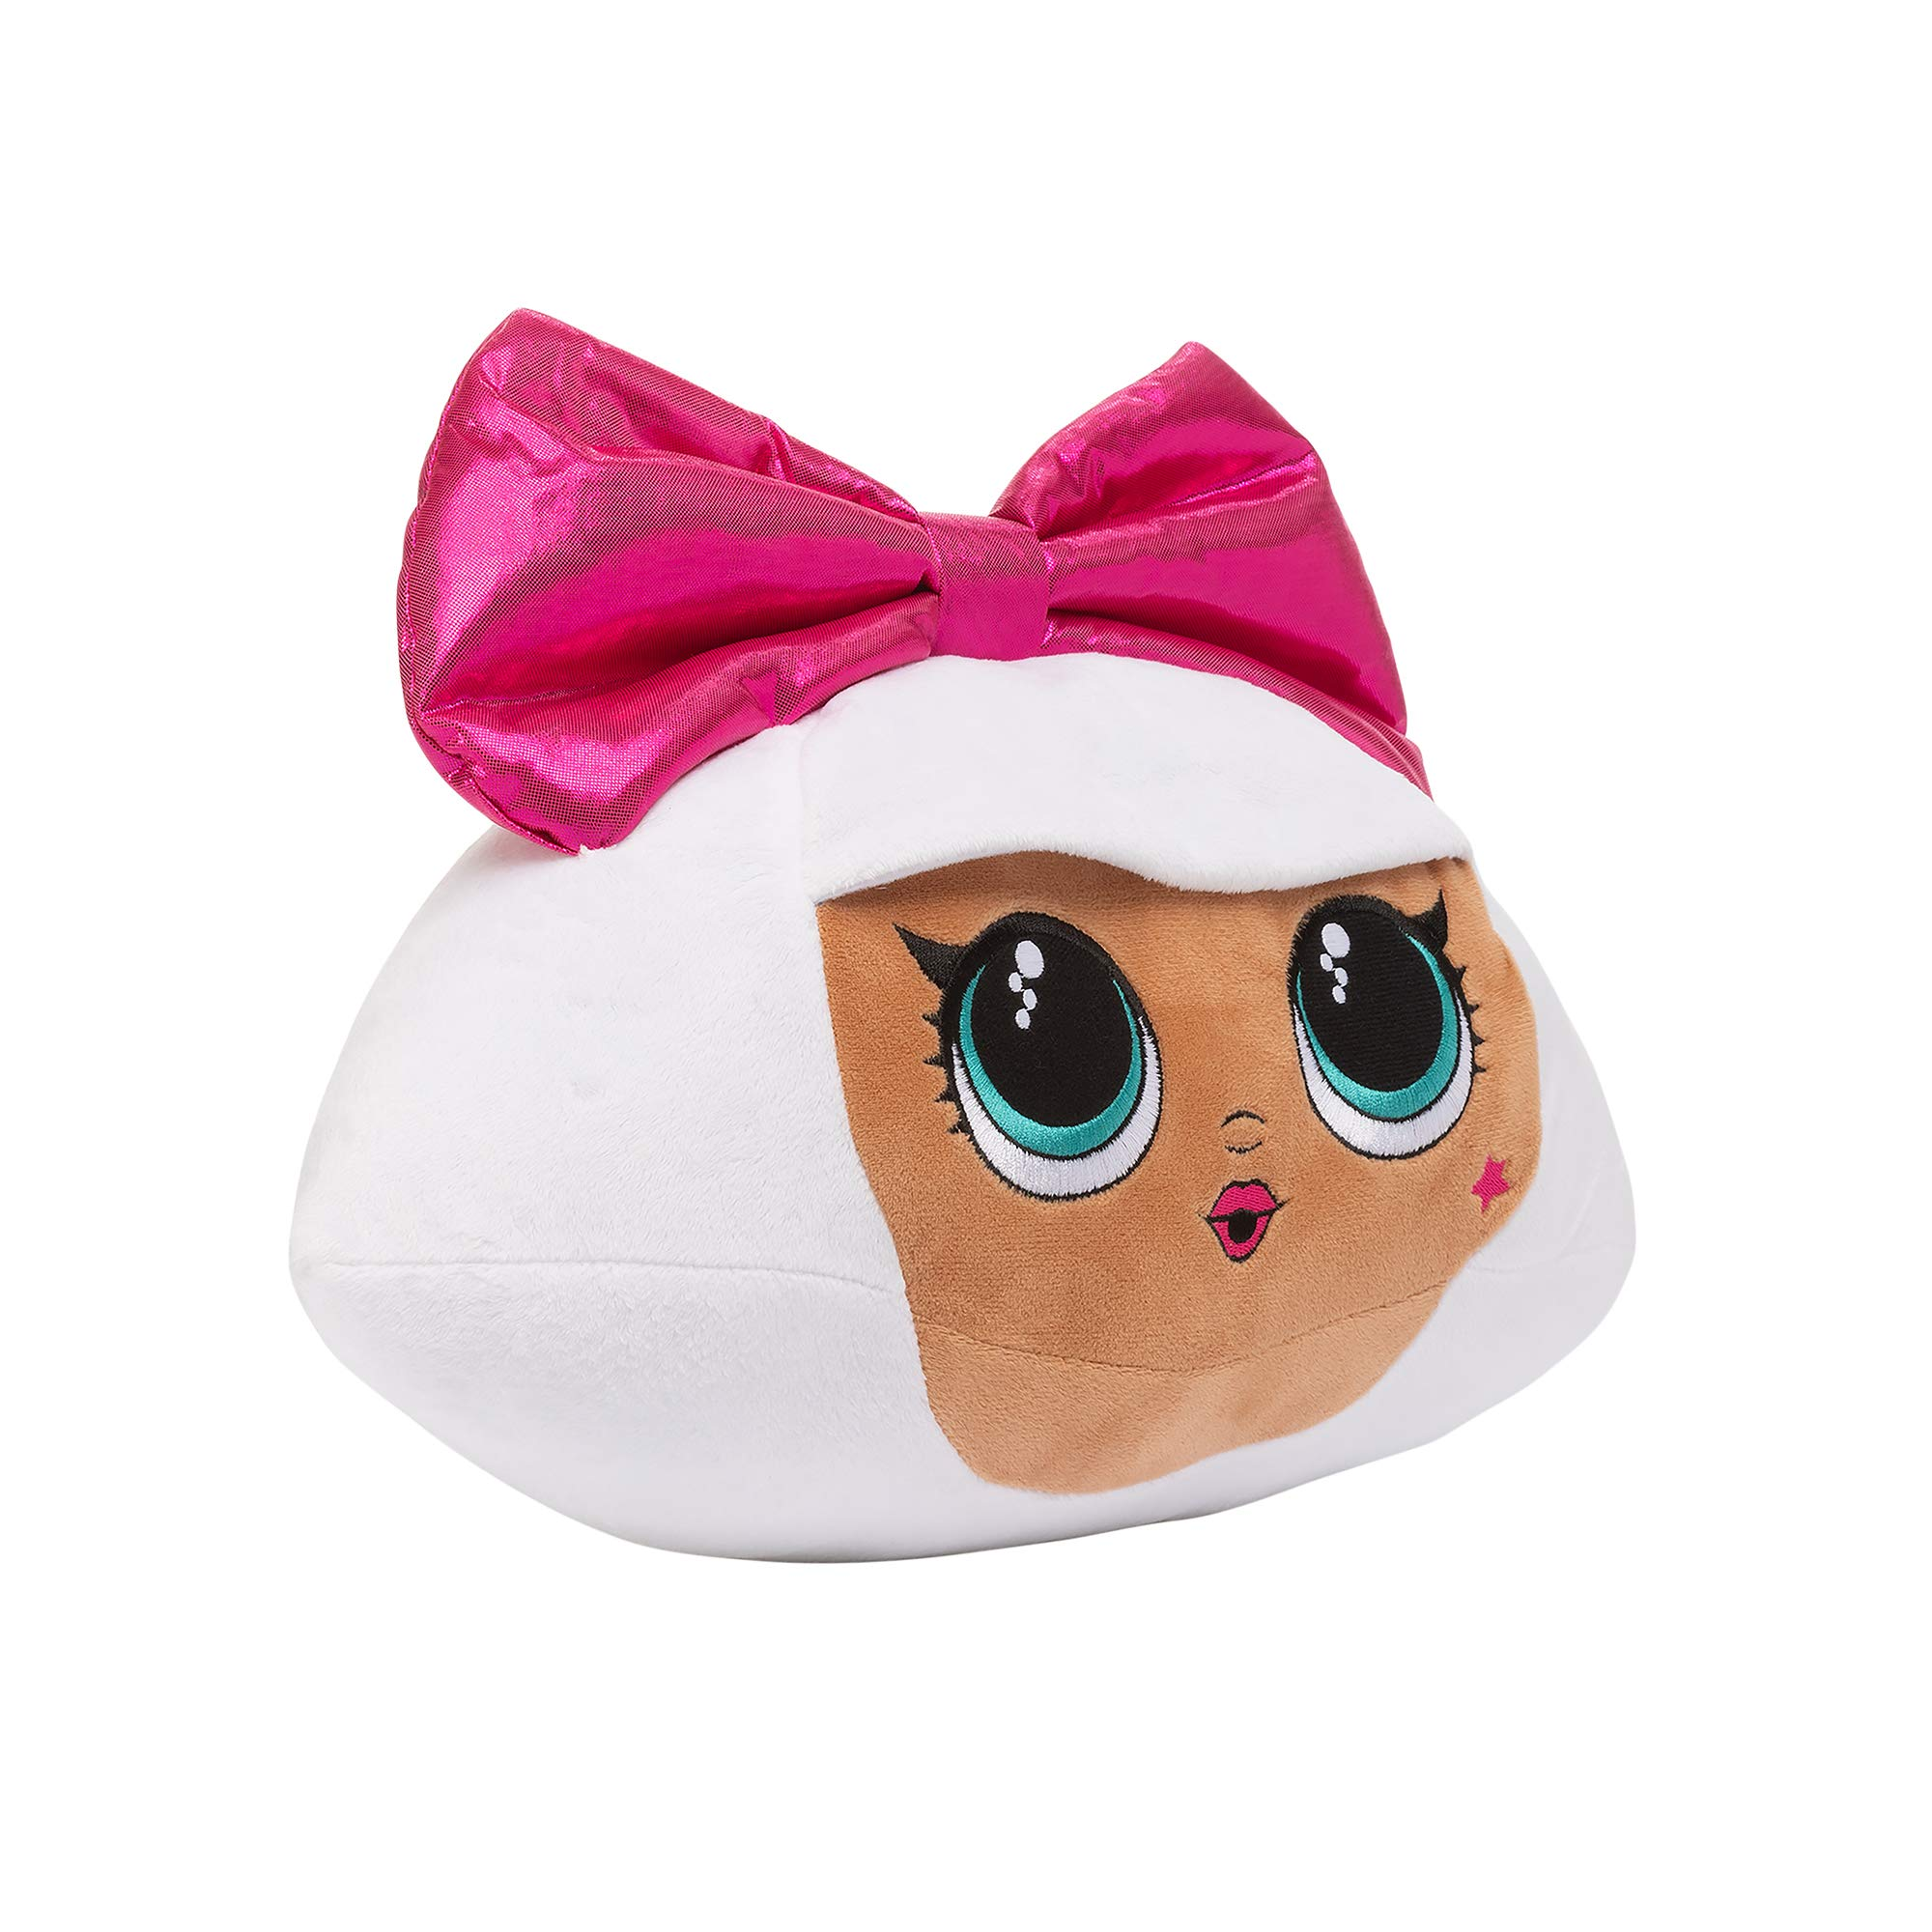 MGA LOL Surprise Diva Character Plush Cuddle Pillow, White/Pink